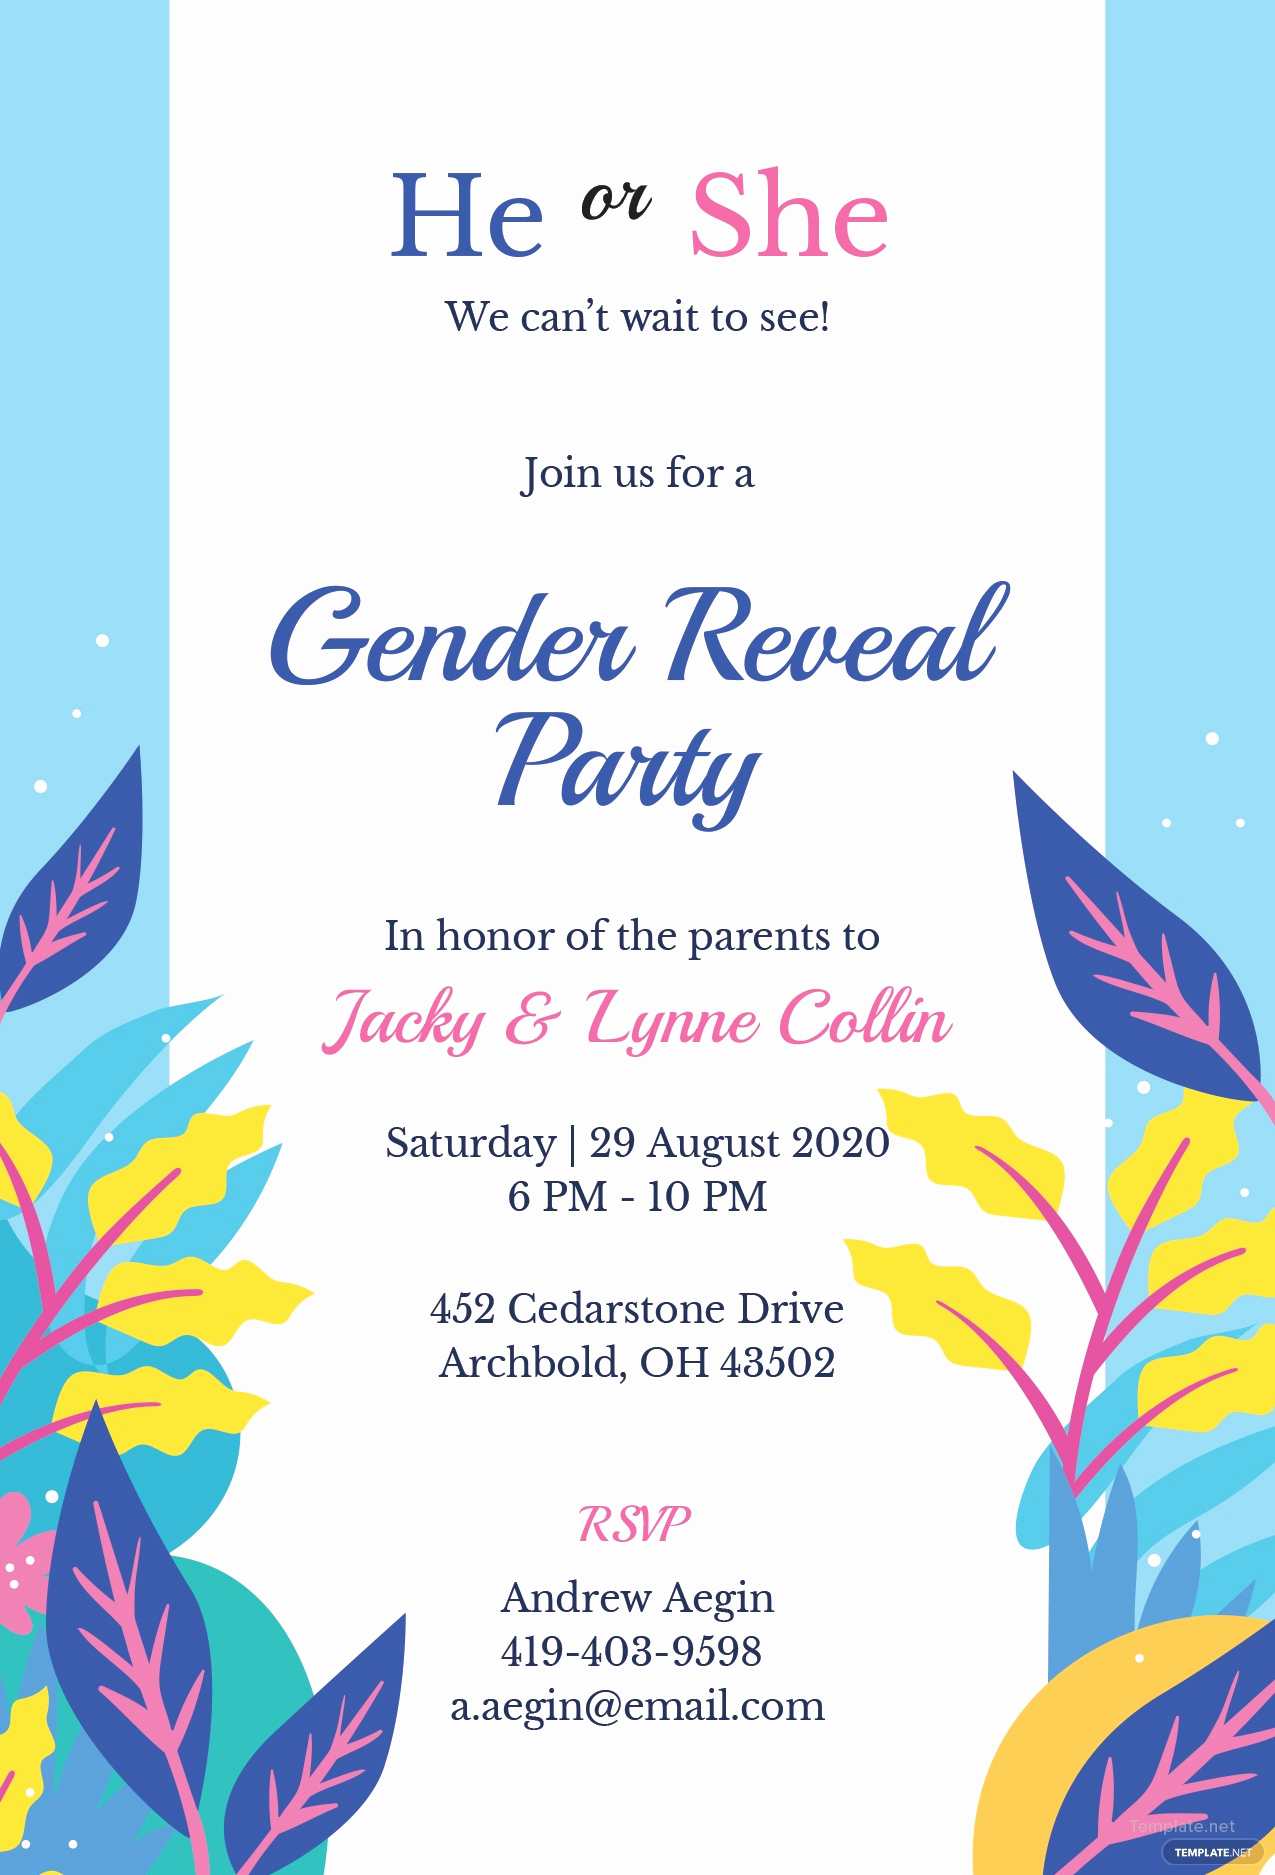 Gender Reveal Invitation Template Best Of Free Gender Reveal Invitation Template In Microsoft Word